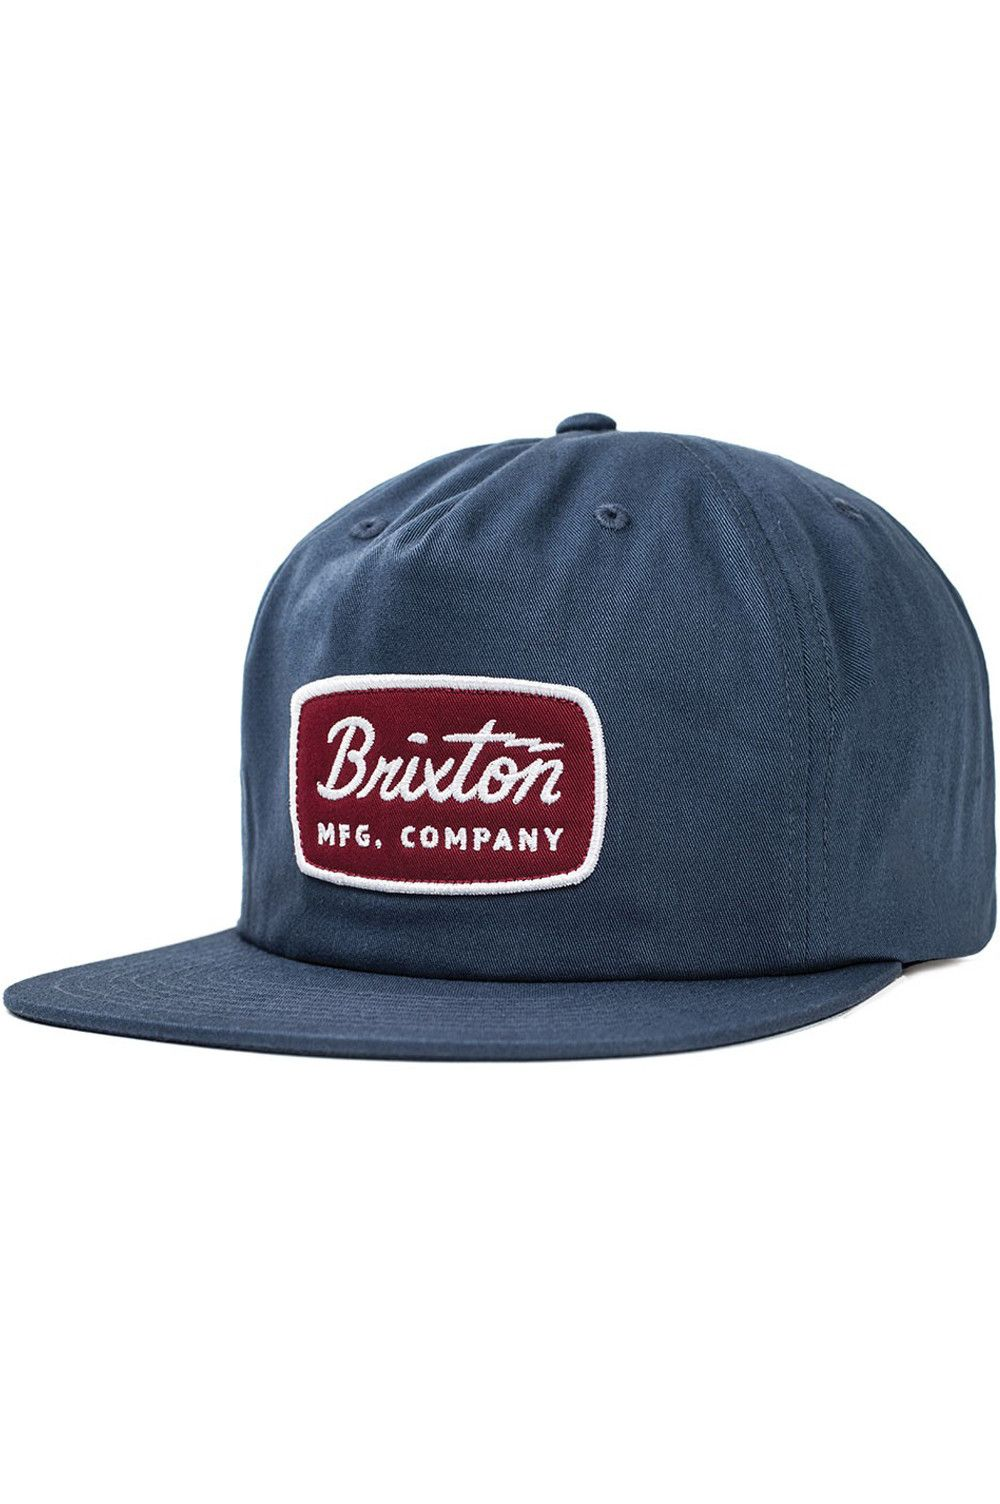 56a9274ea3f The Jolt HP from Brixton is a five-panel cut and sew cotton ...